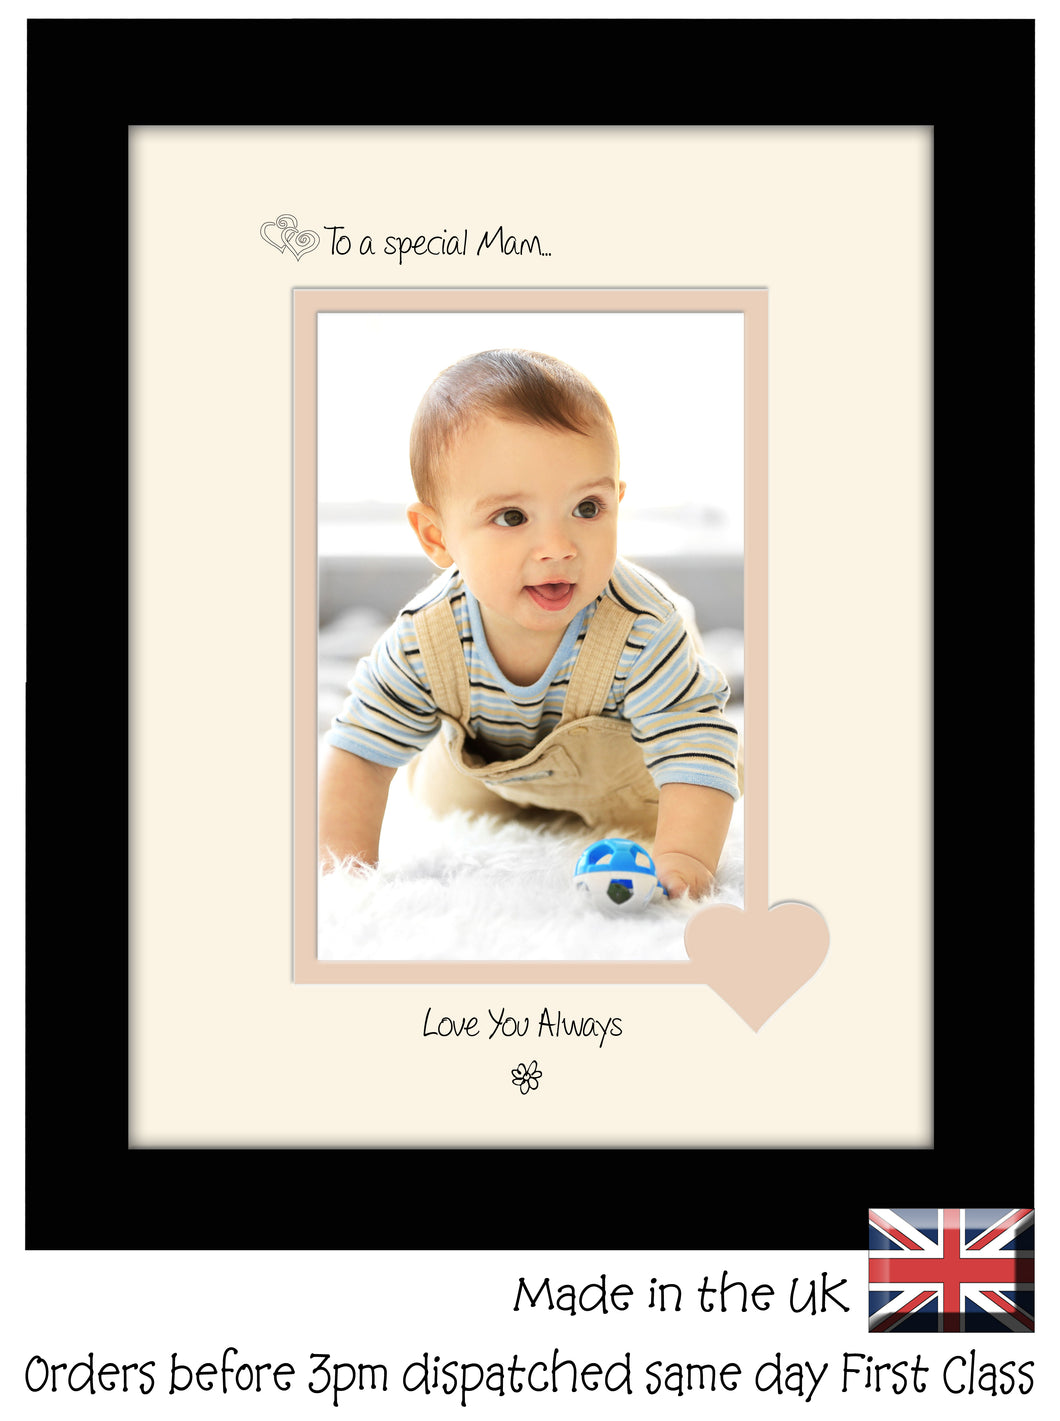 Mam Photo Frame - To a Special Mam... Love you Always Portrait photo frame 6